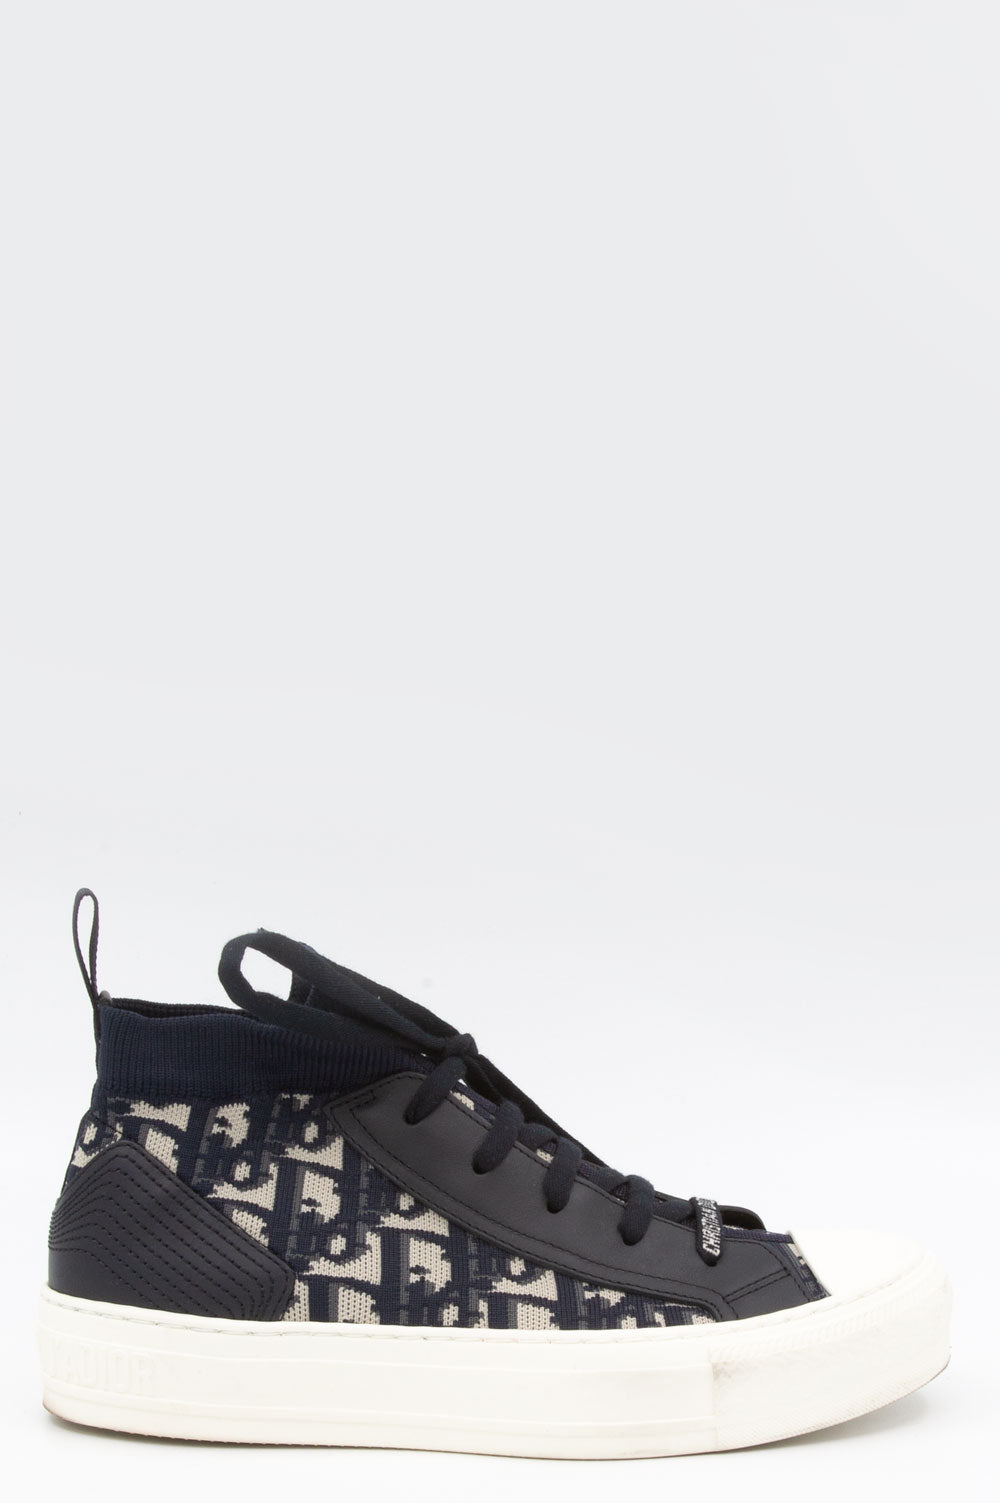 Christian Dior Walk'N'Dior Sneakers in Oblique.